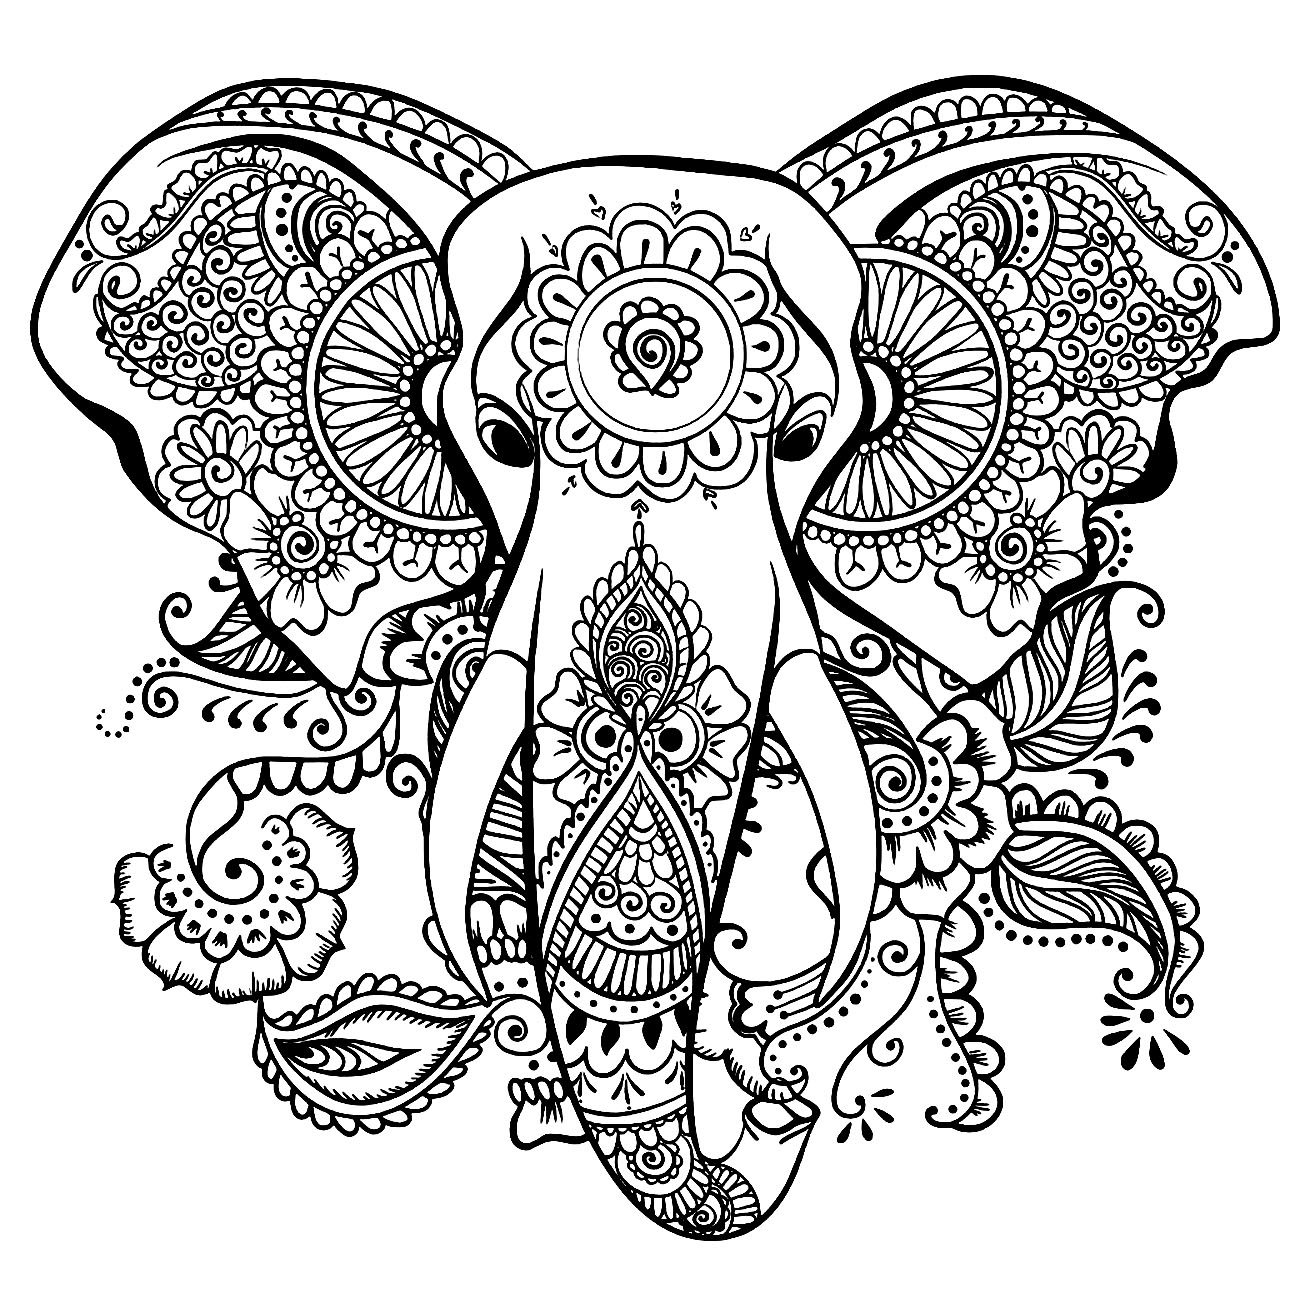 colouring pictures of elephant elephants free to color for children elephants kids of colouring pictures elephant